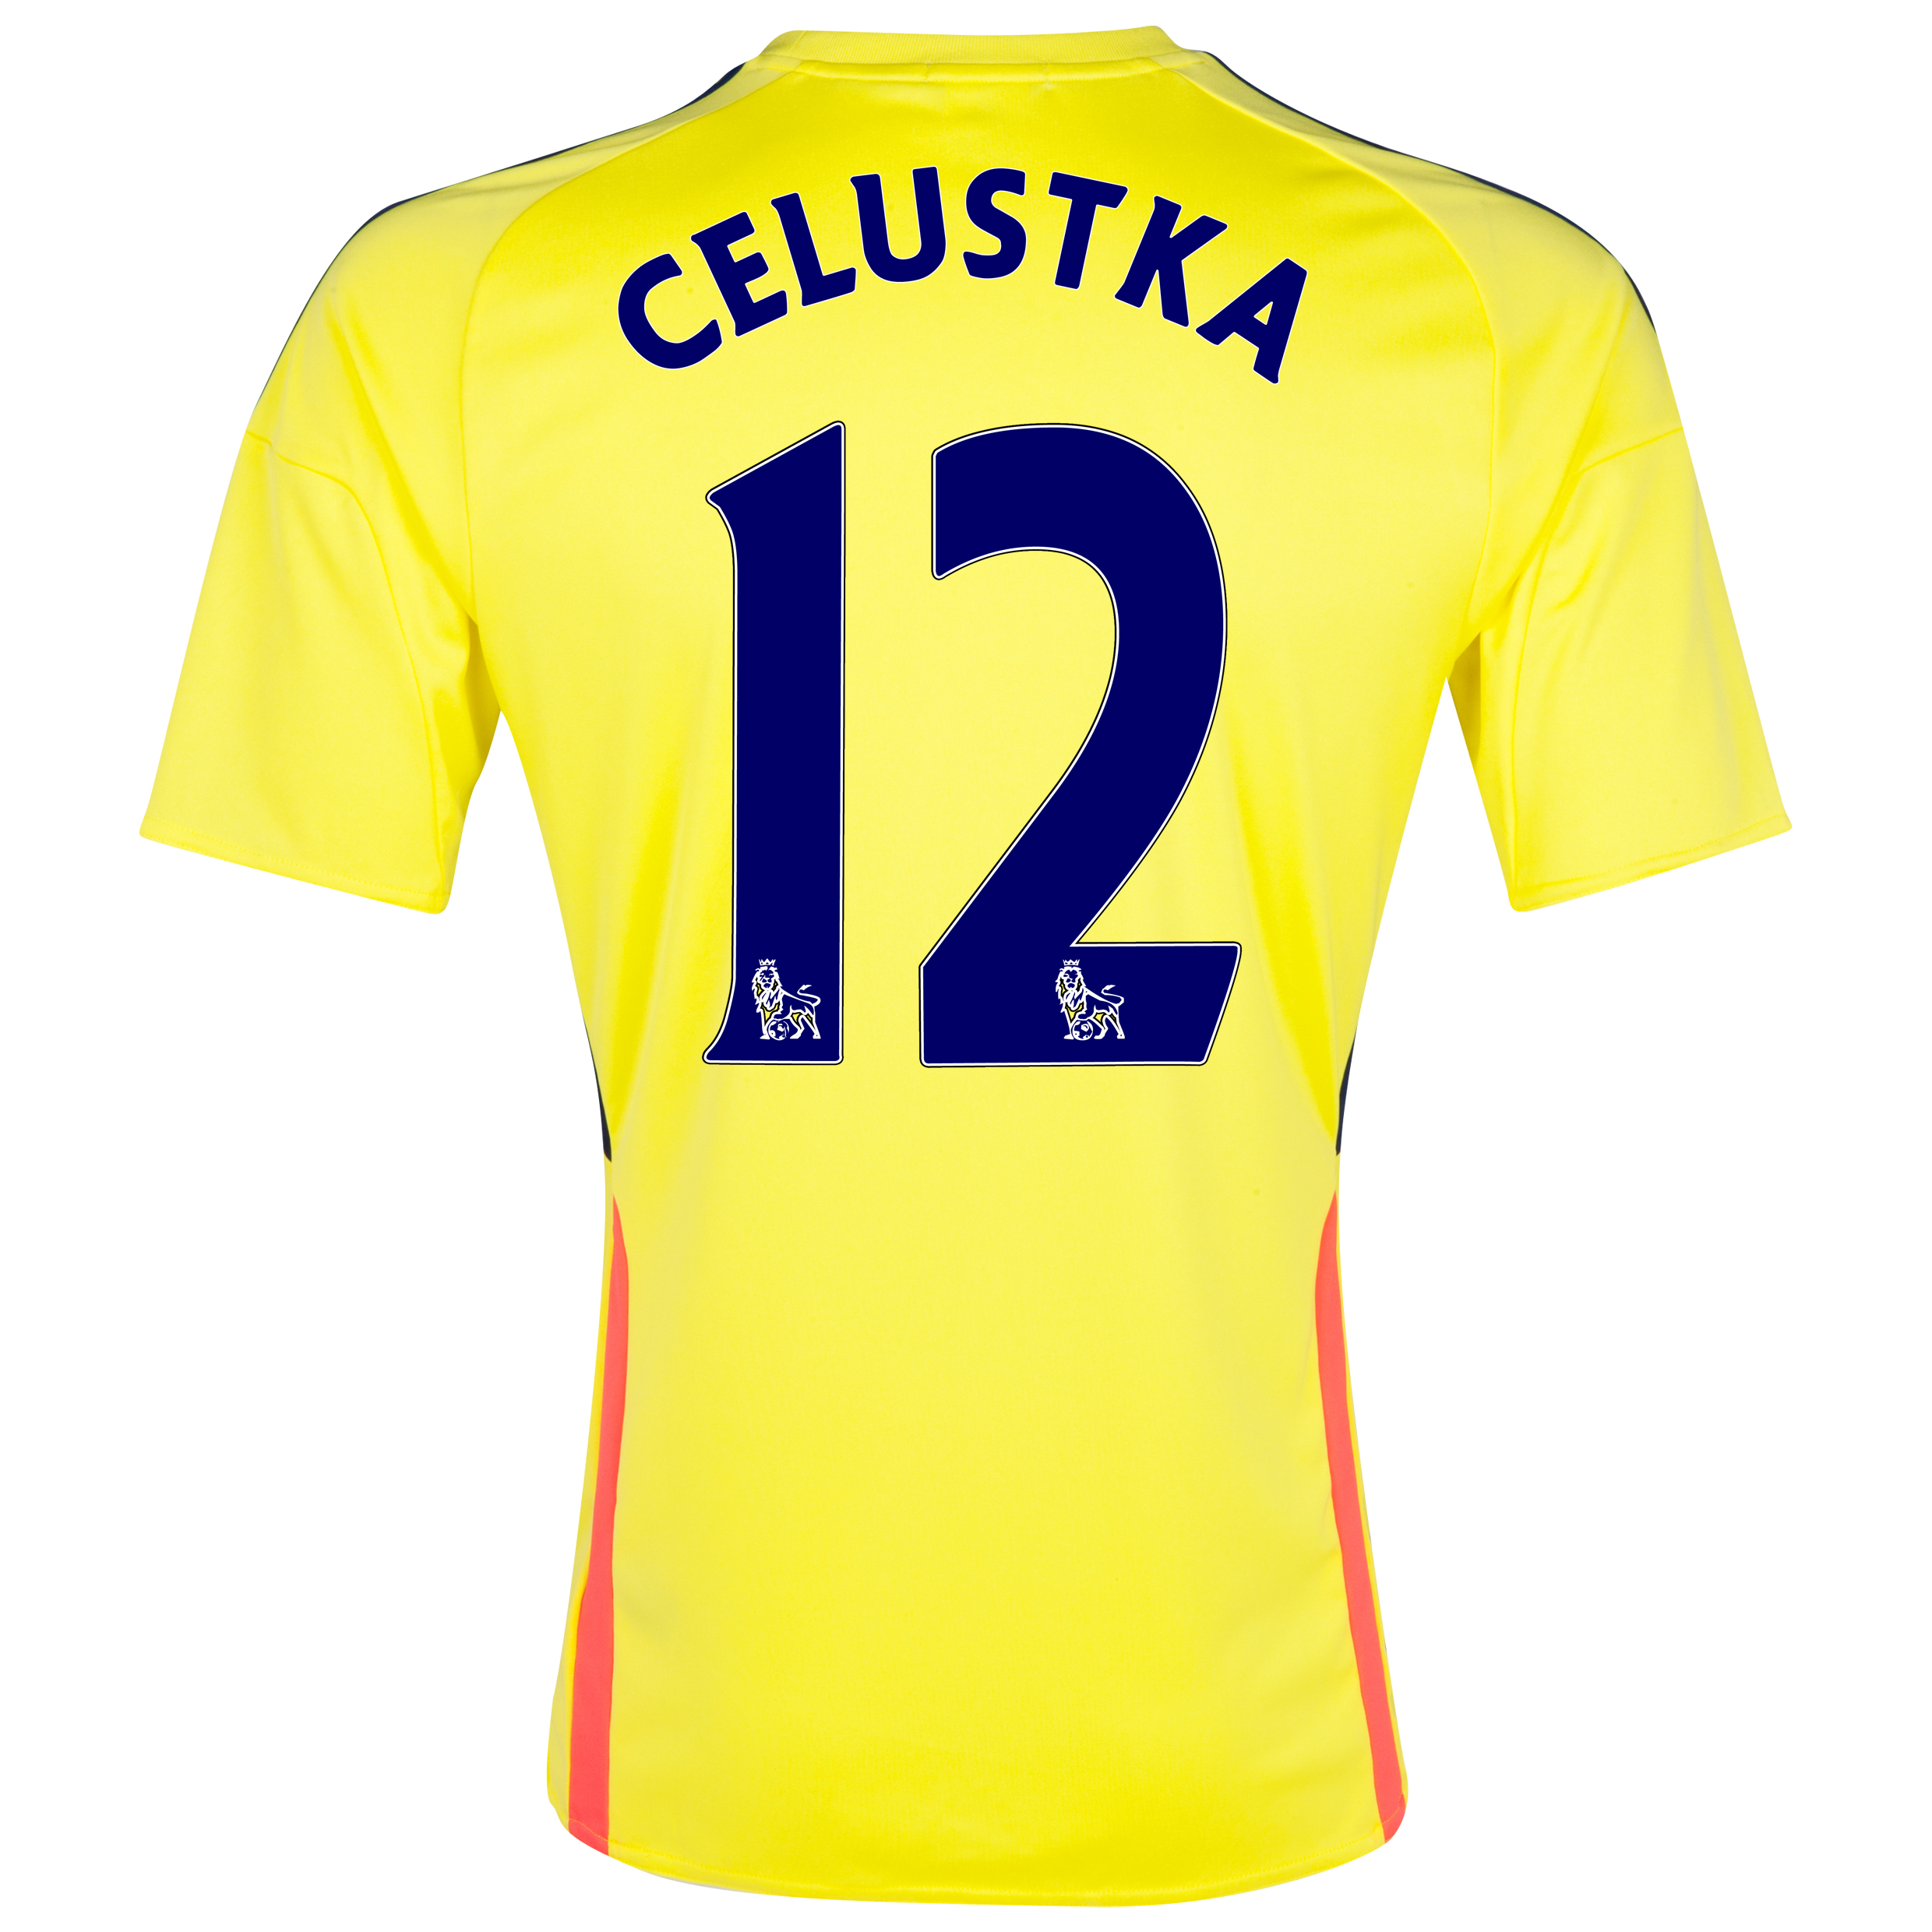 Sunderland Away Shirt 2013/14 with Celustka 12 printing